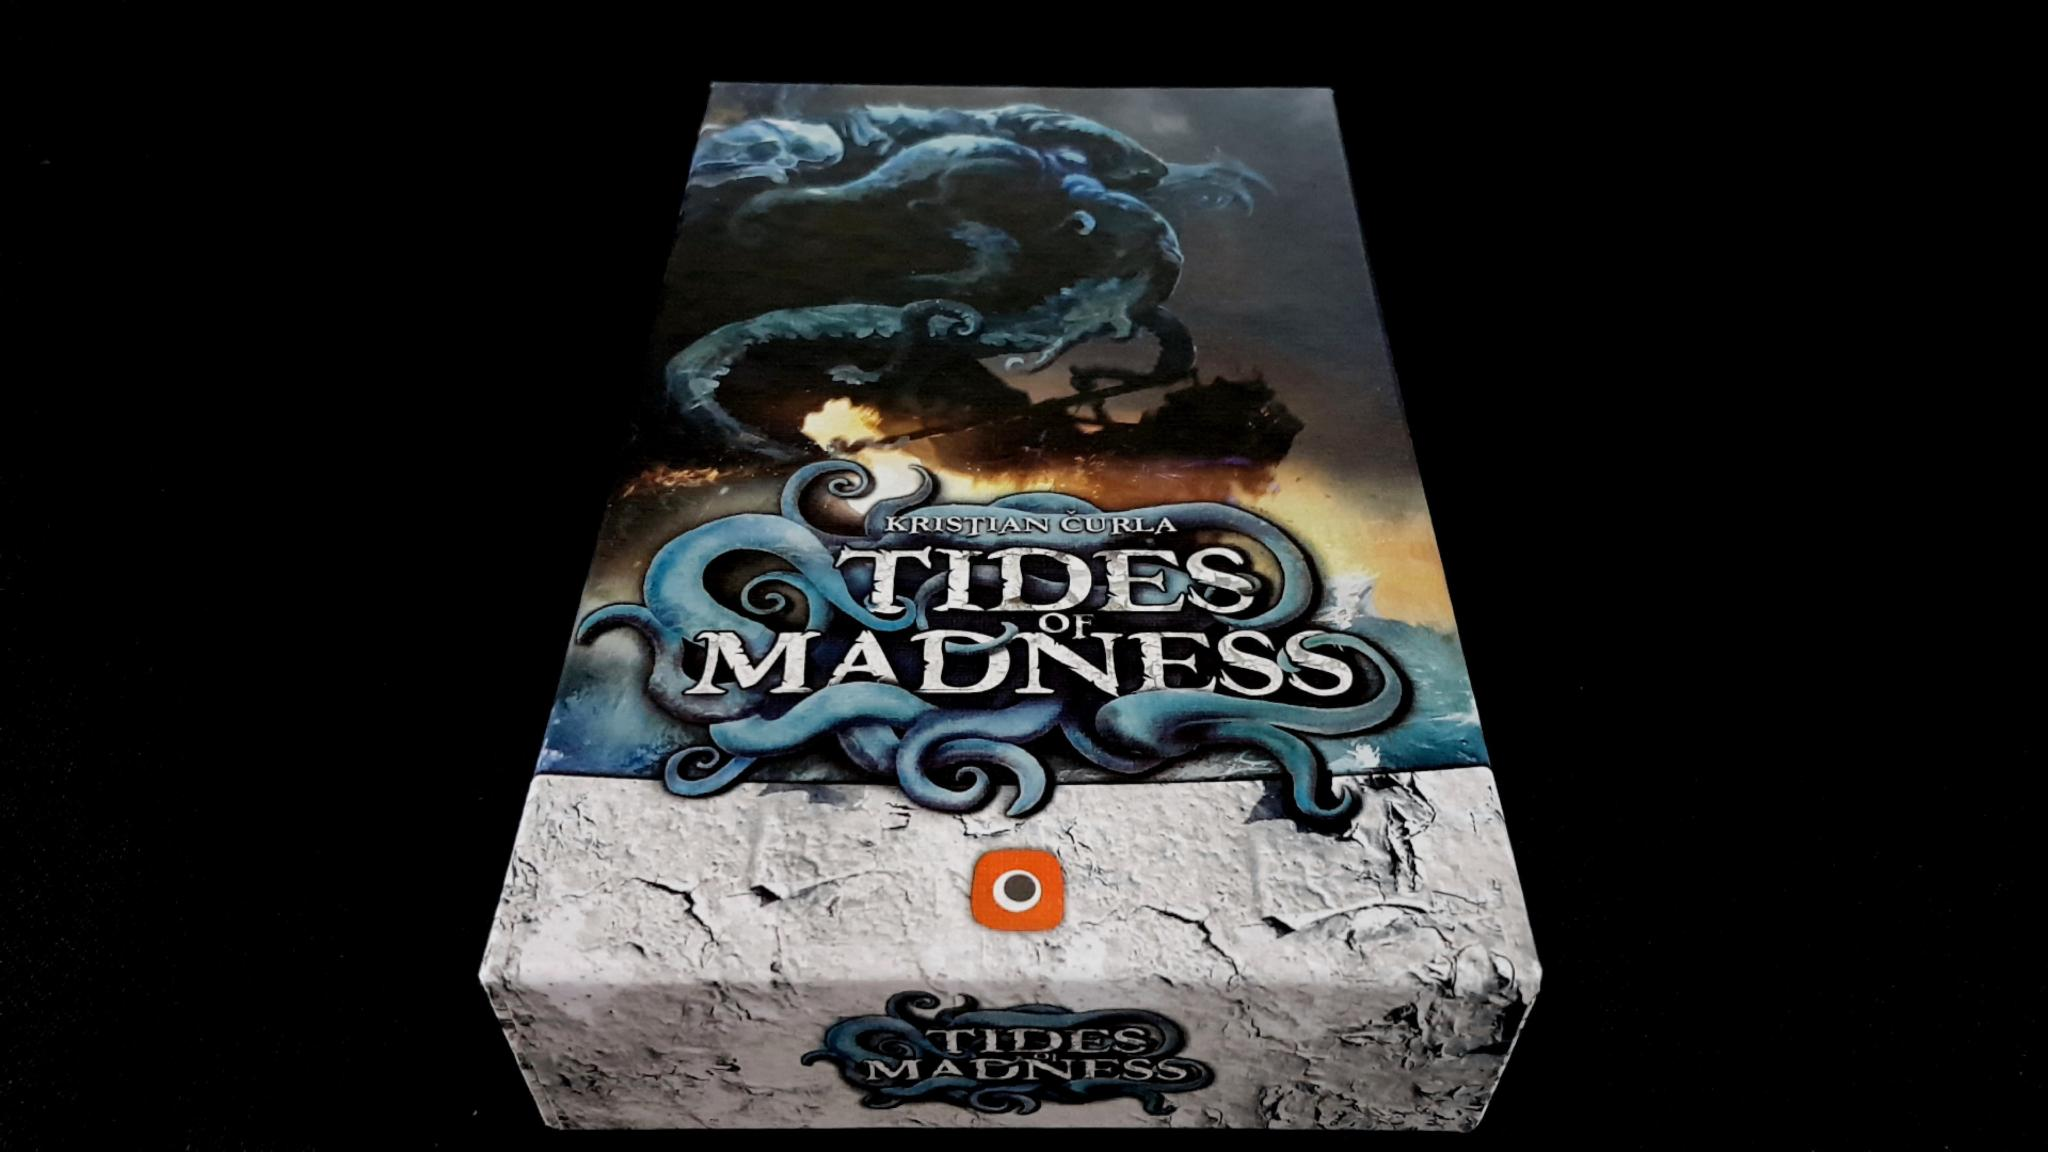 Tides of Madness (2016) image